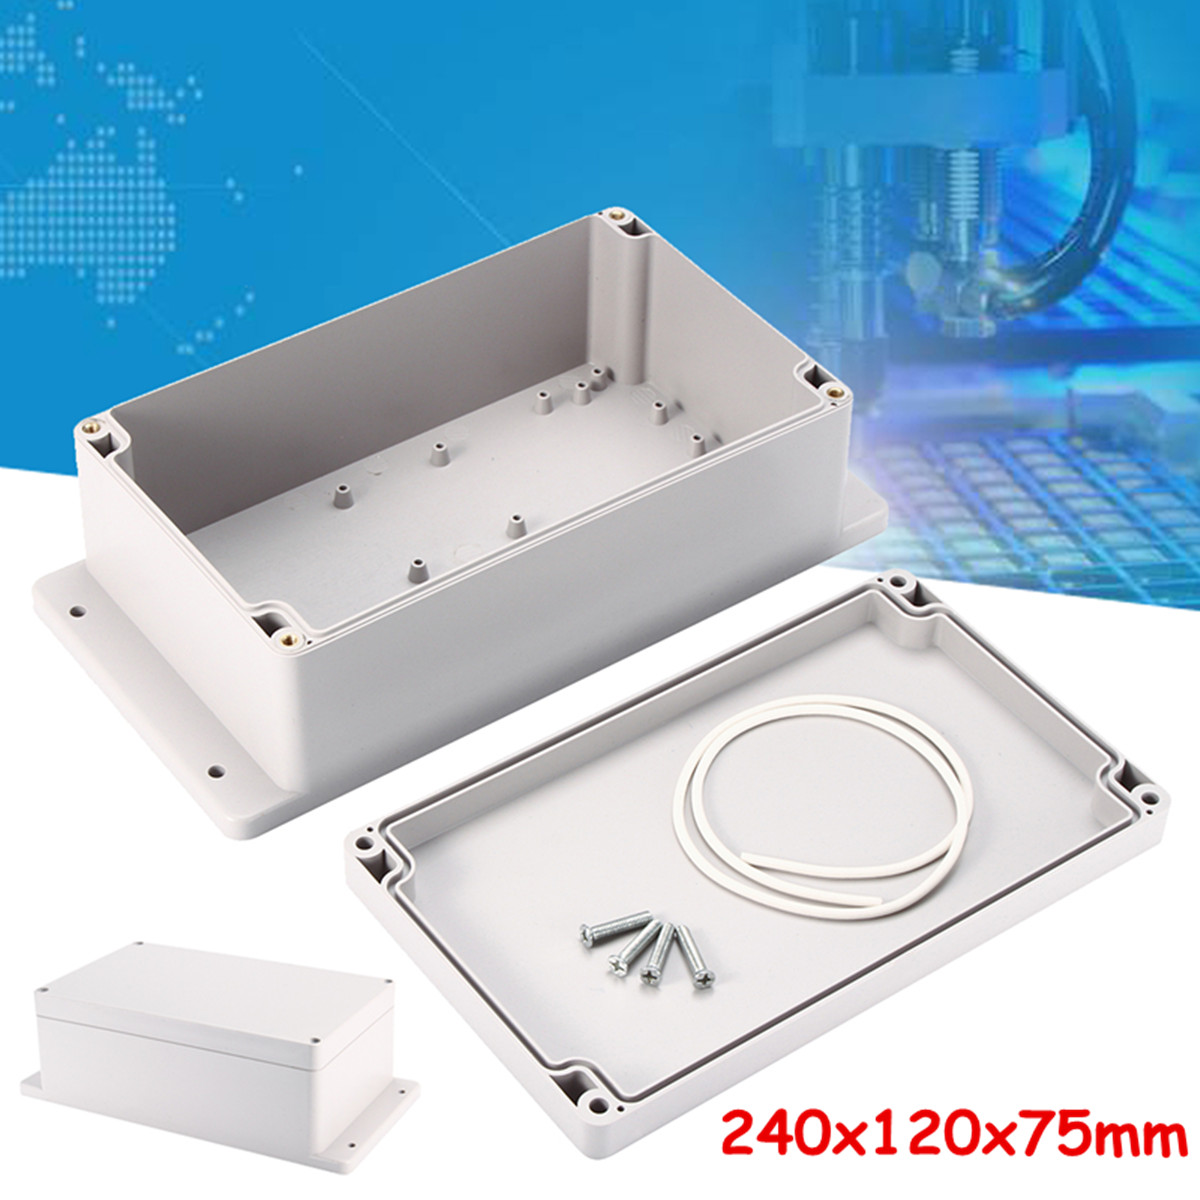 240x120x75mm ABS Waterproof Enclosure Box Electronic Project Instrument Case Electrical Project Box Outdoor Junction Box Housing